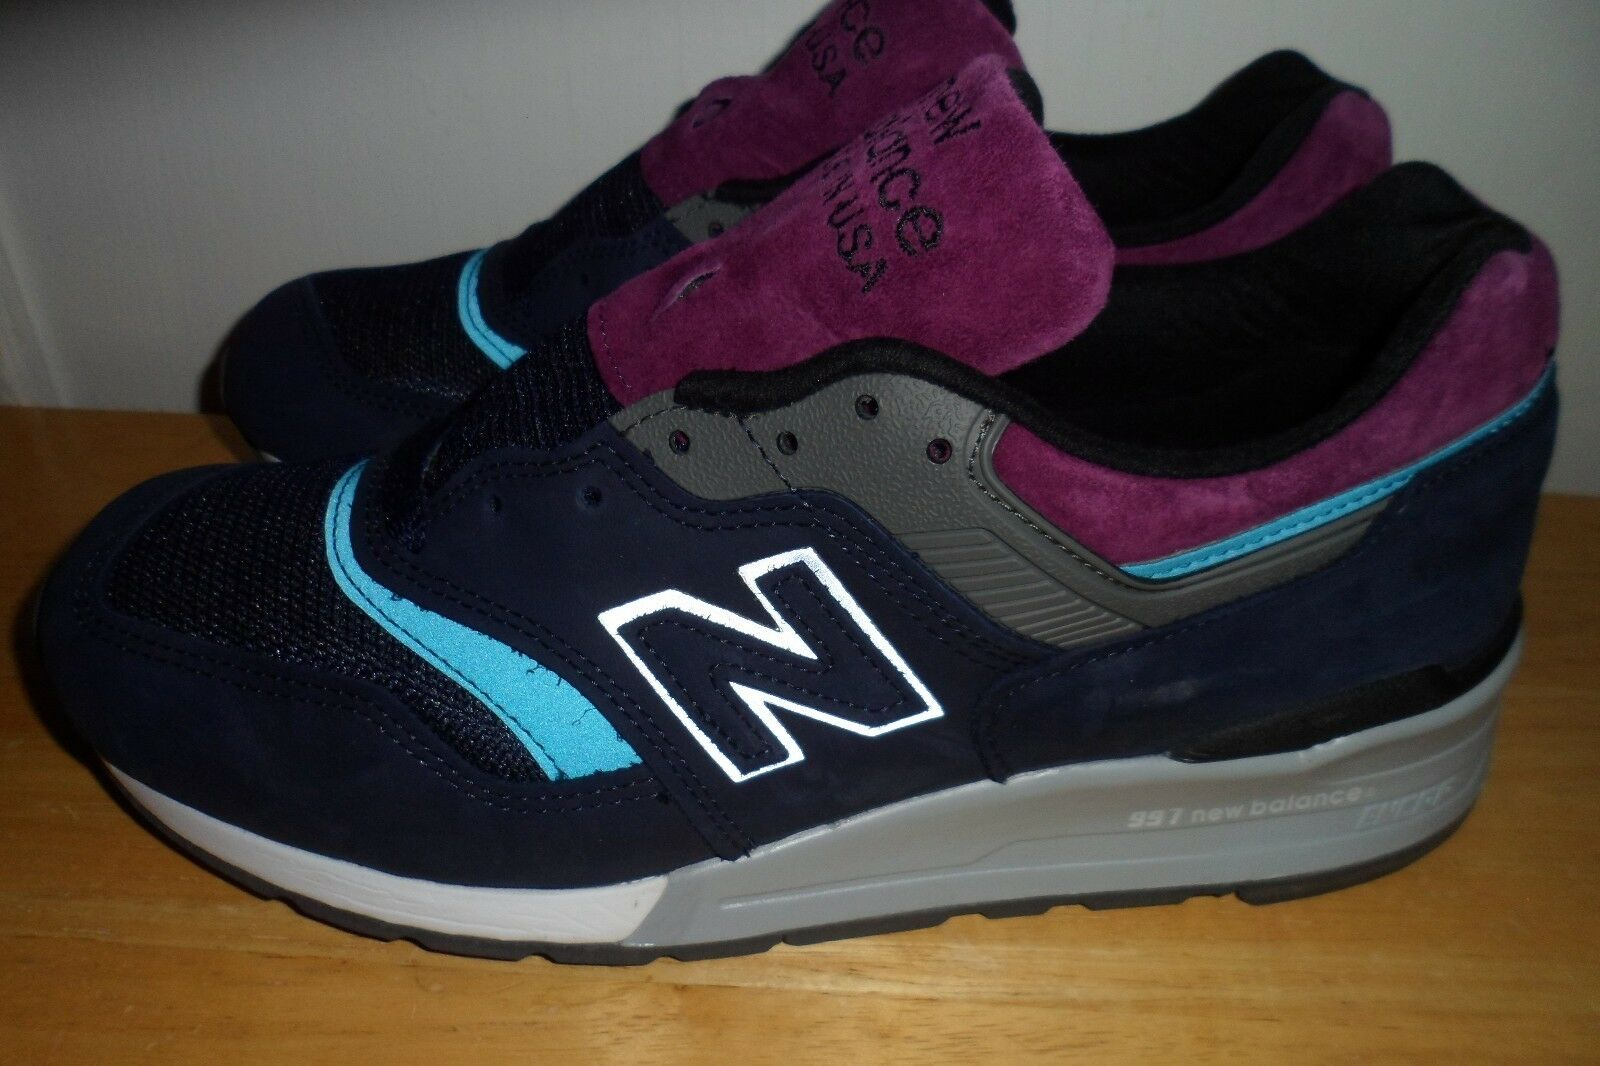 NEW BALANCE 997 MADE IN USA NORTHERN LIGHTS PACK NAVY BLUE GREY M997PTB 8.5 D